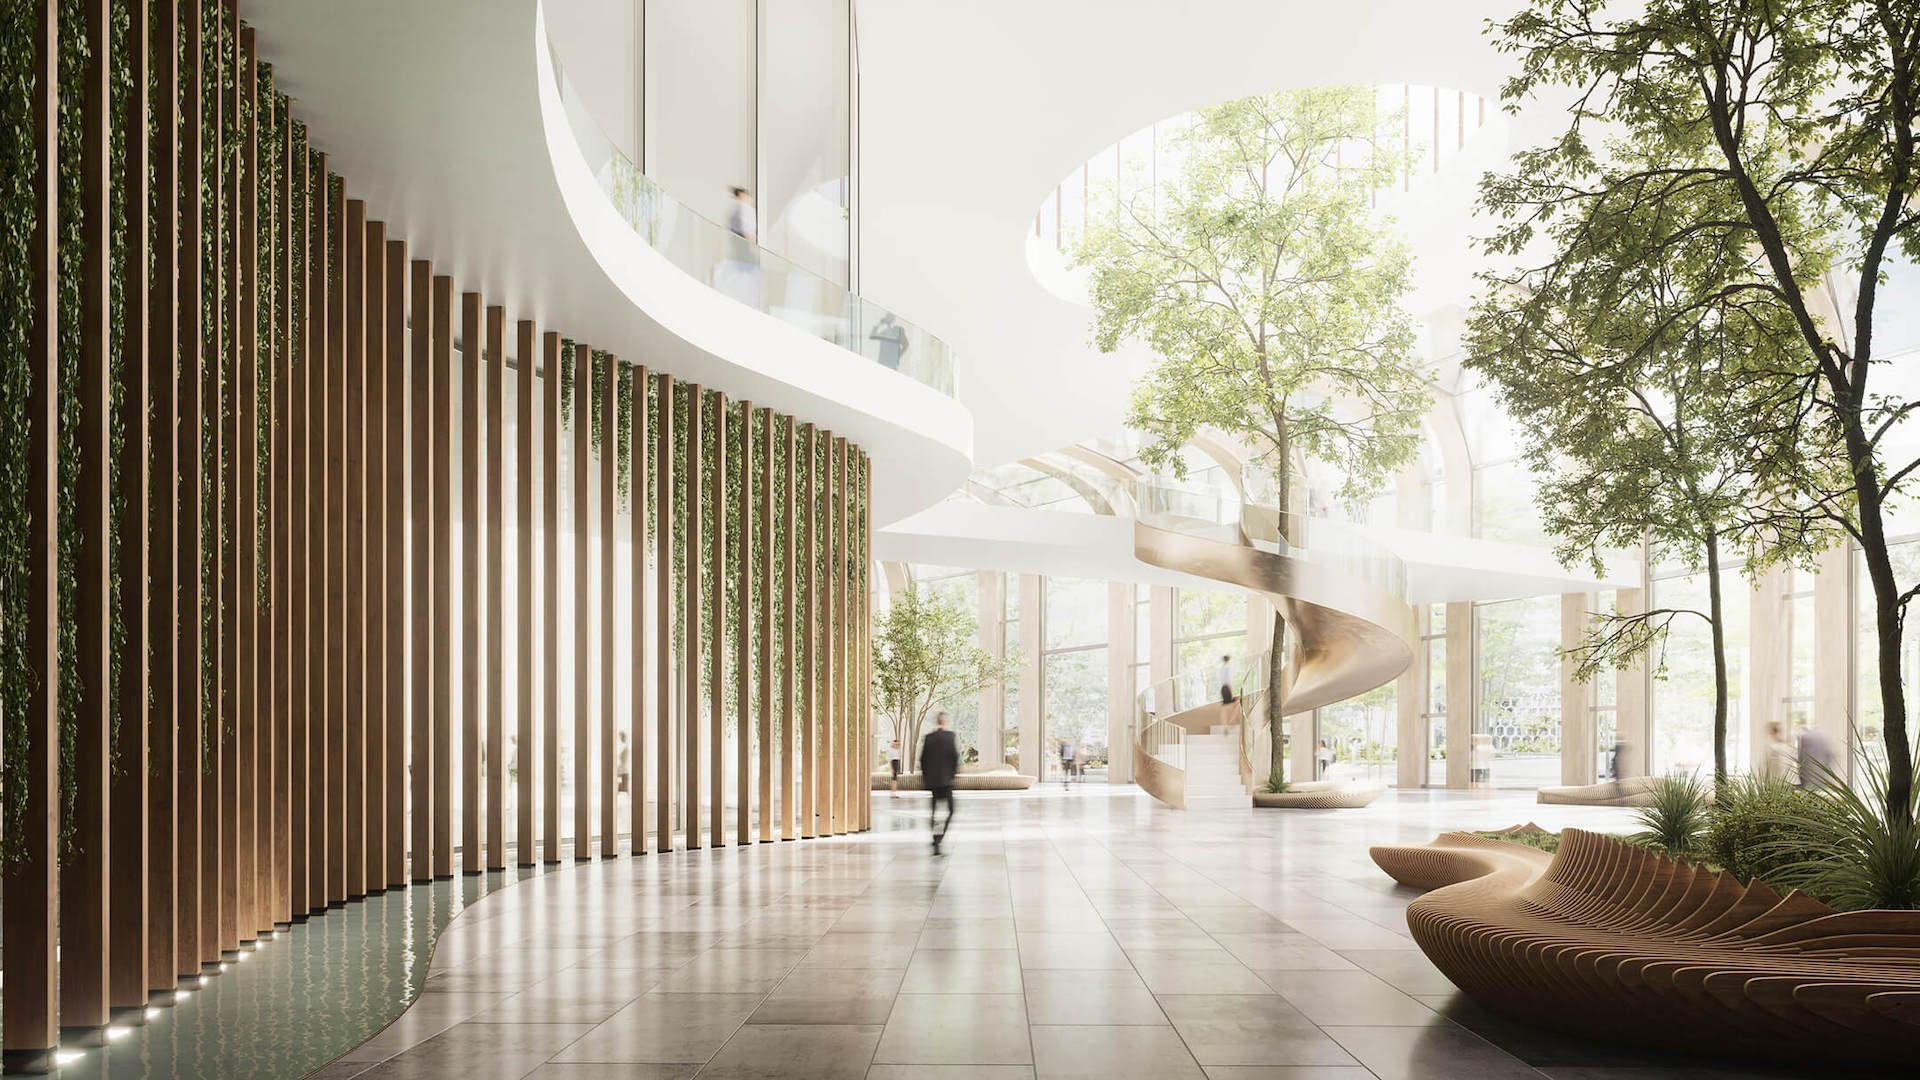 Photorealistic 3D Render for a Green Business Center Concept